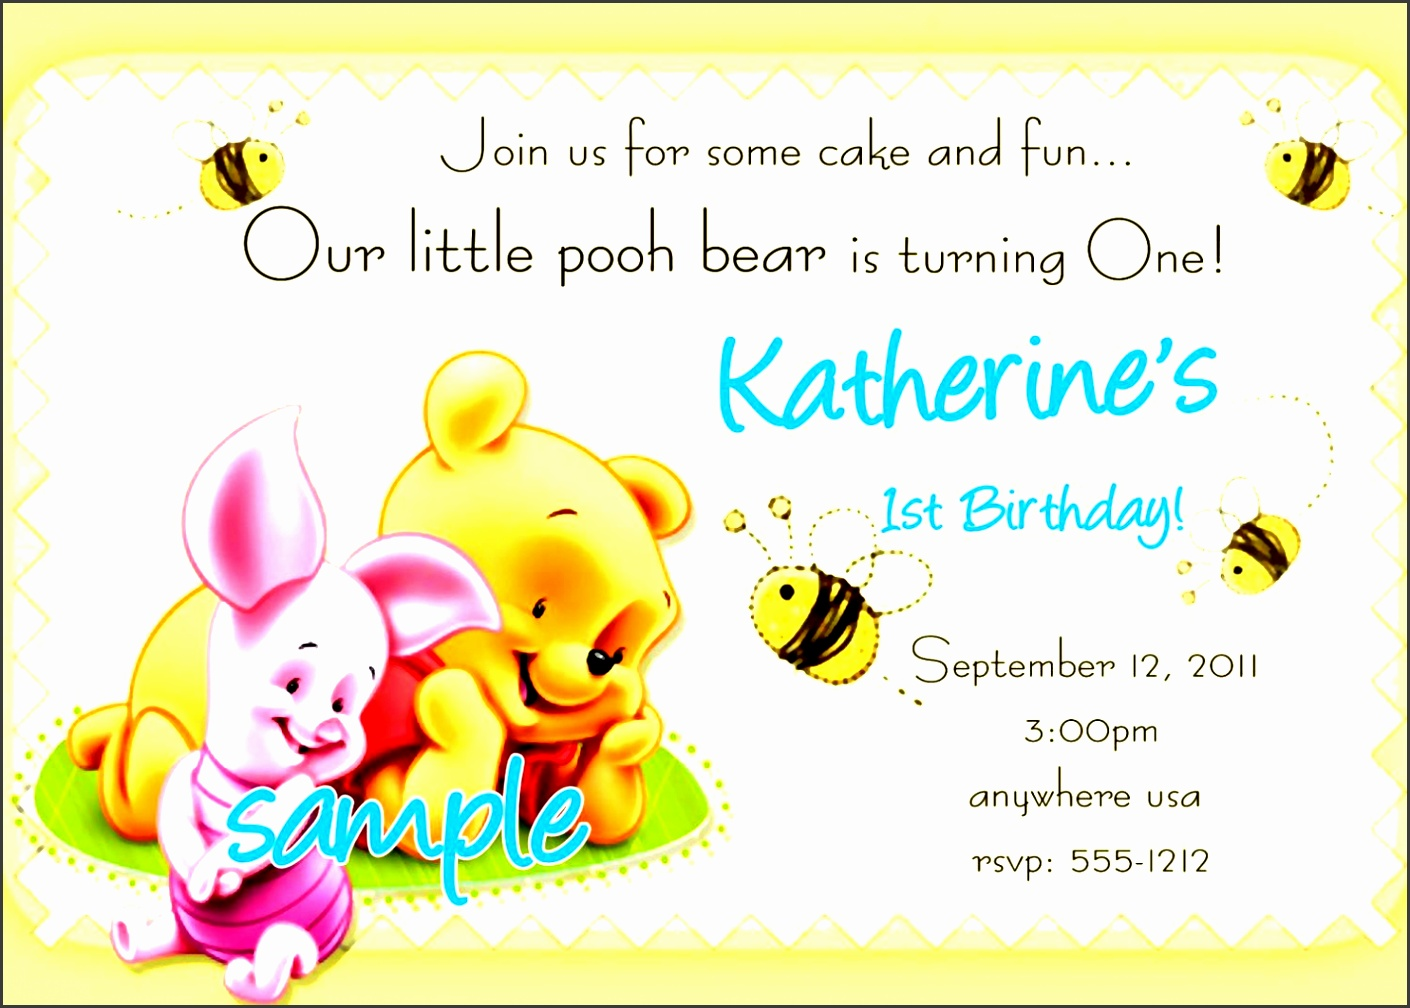 Birthday kid birthday invitation template kid birthday new kid birthday invitation card template 58 for card